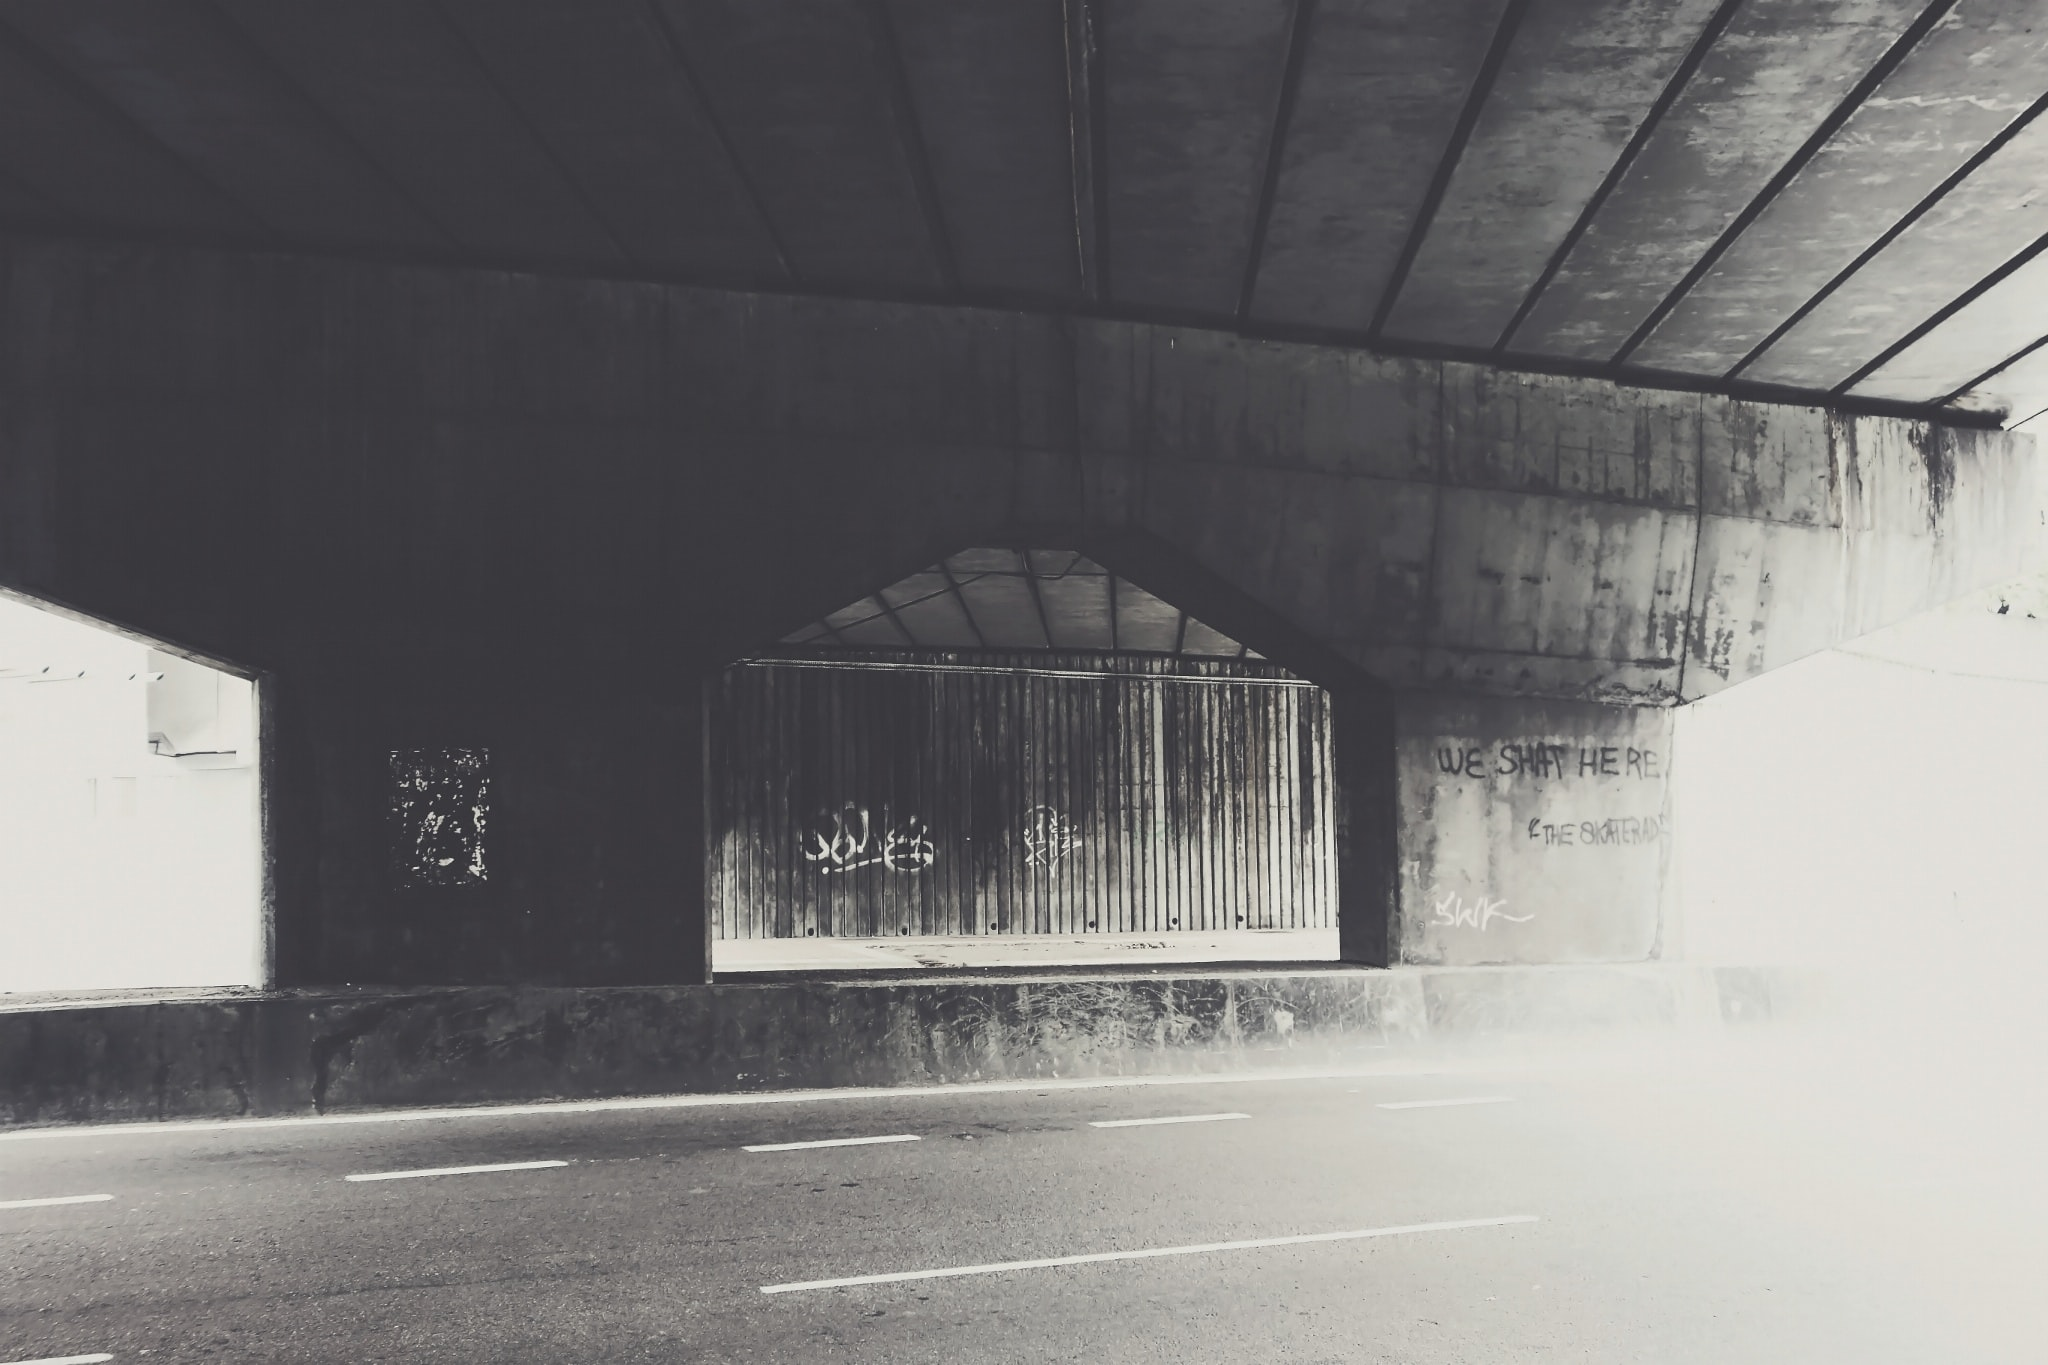 Black and white shot of underpass with graffiti and road